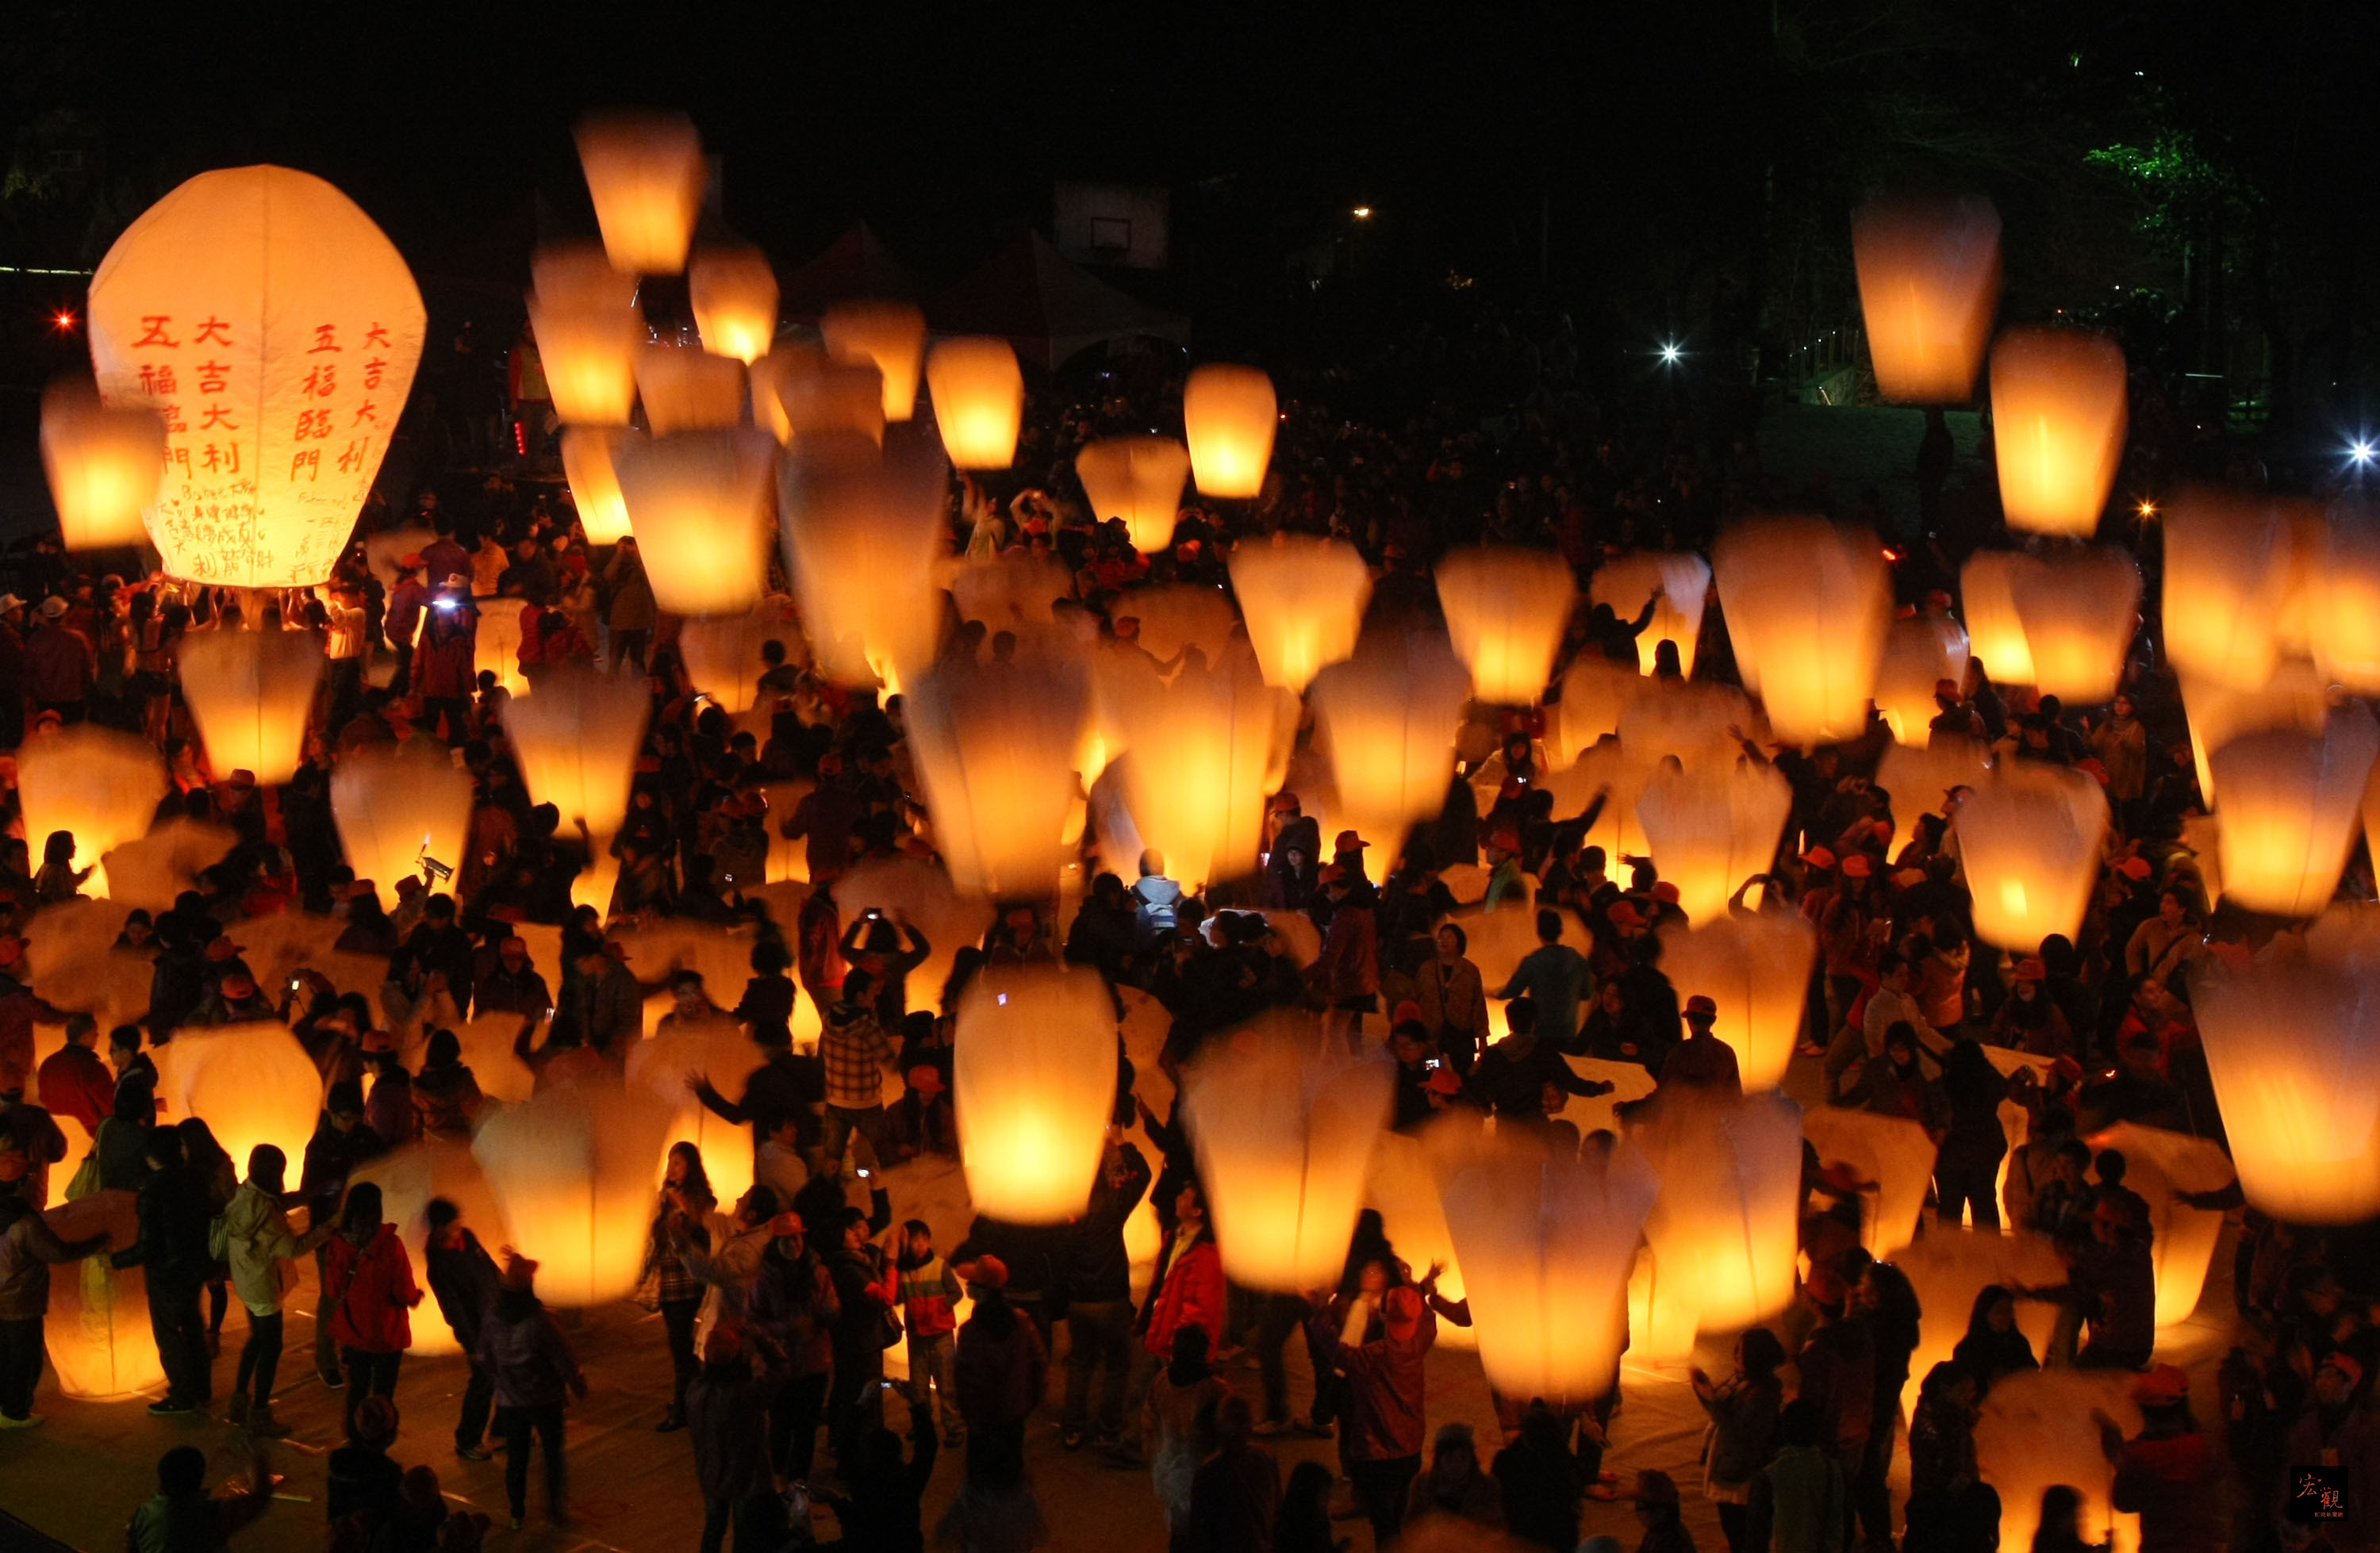 Taiwan' Pingxi Sky Lantern Festival is ranked among the 15 Festivals to Attend Before You Die